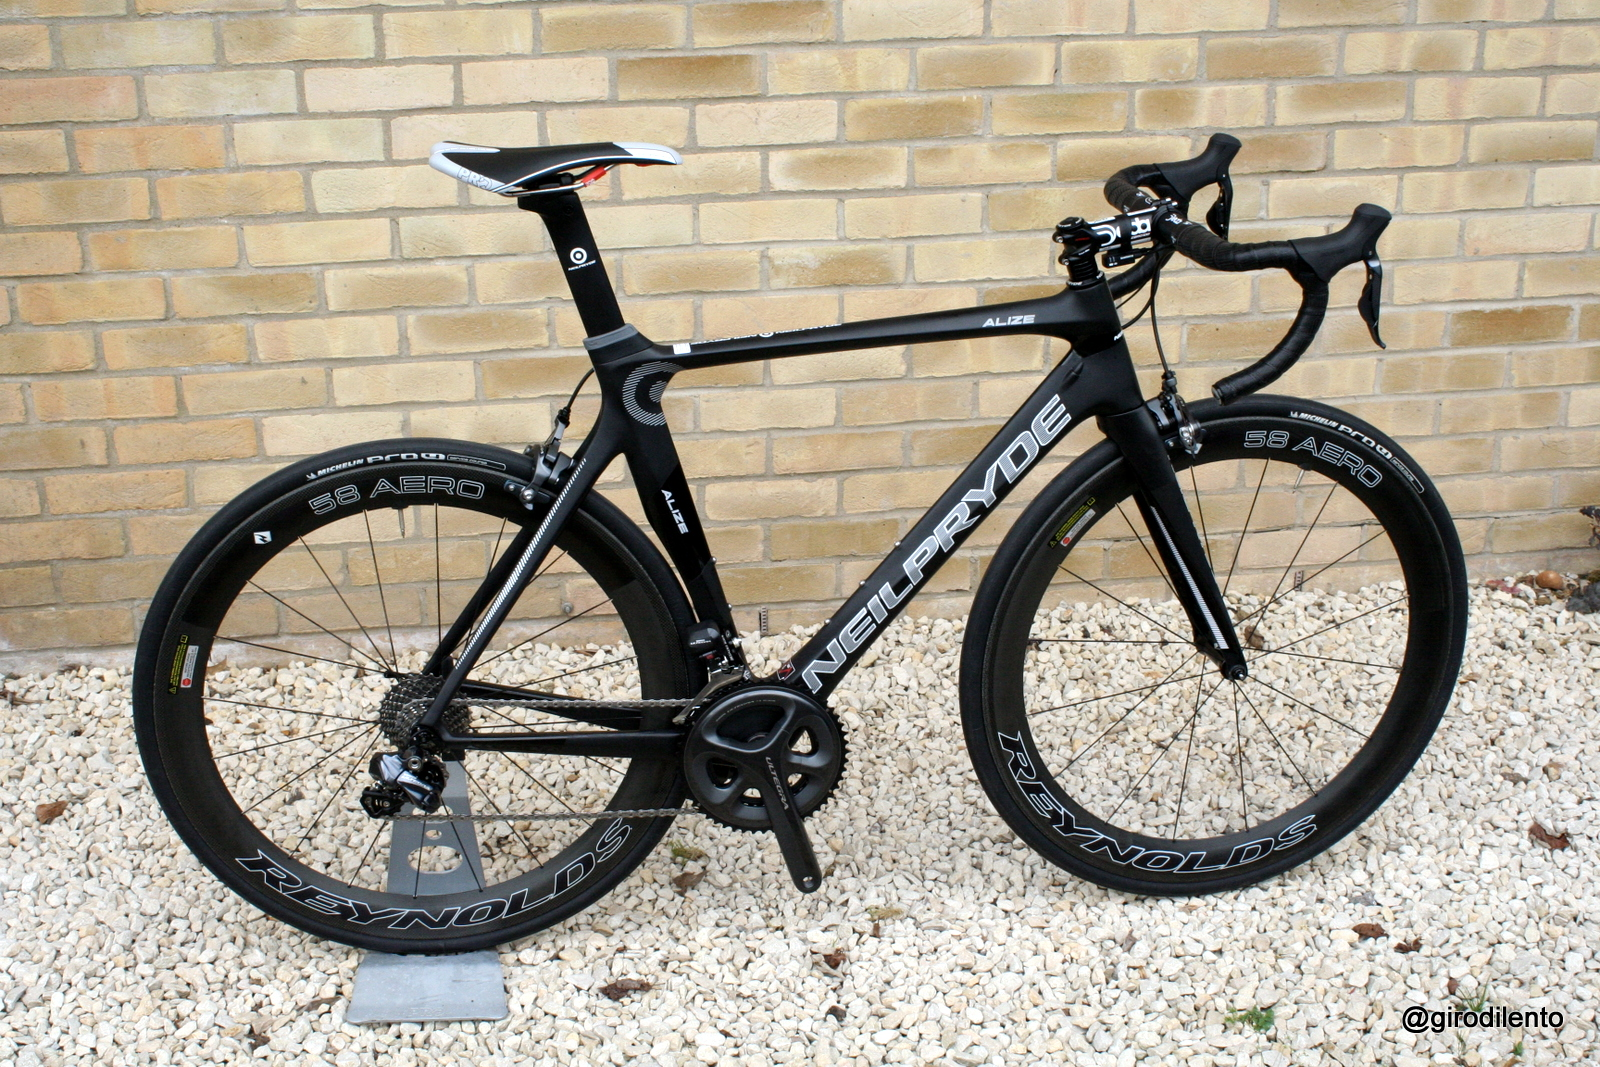 NeilPryde Alize/Nazare complete